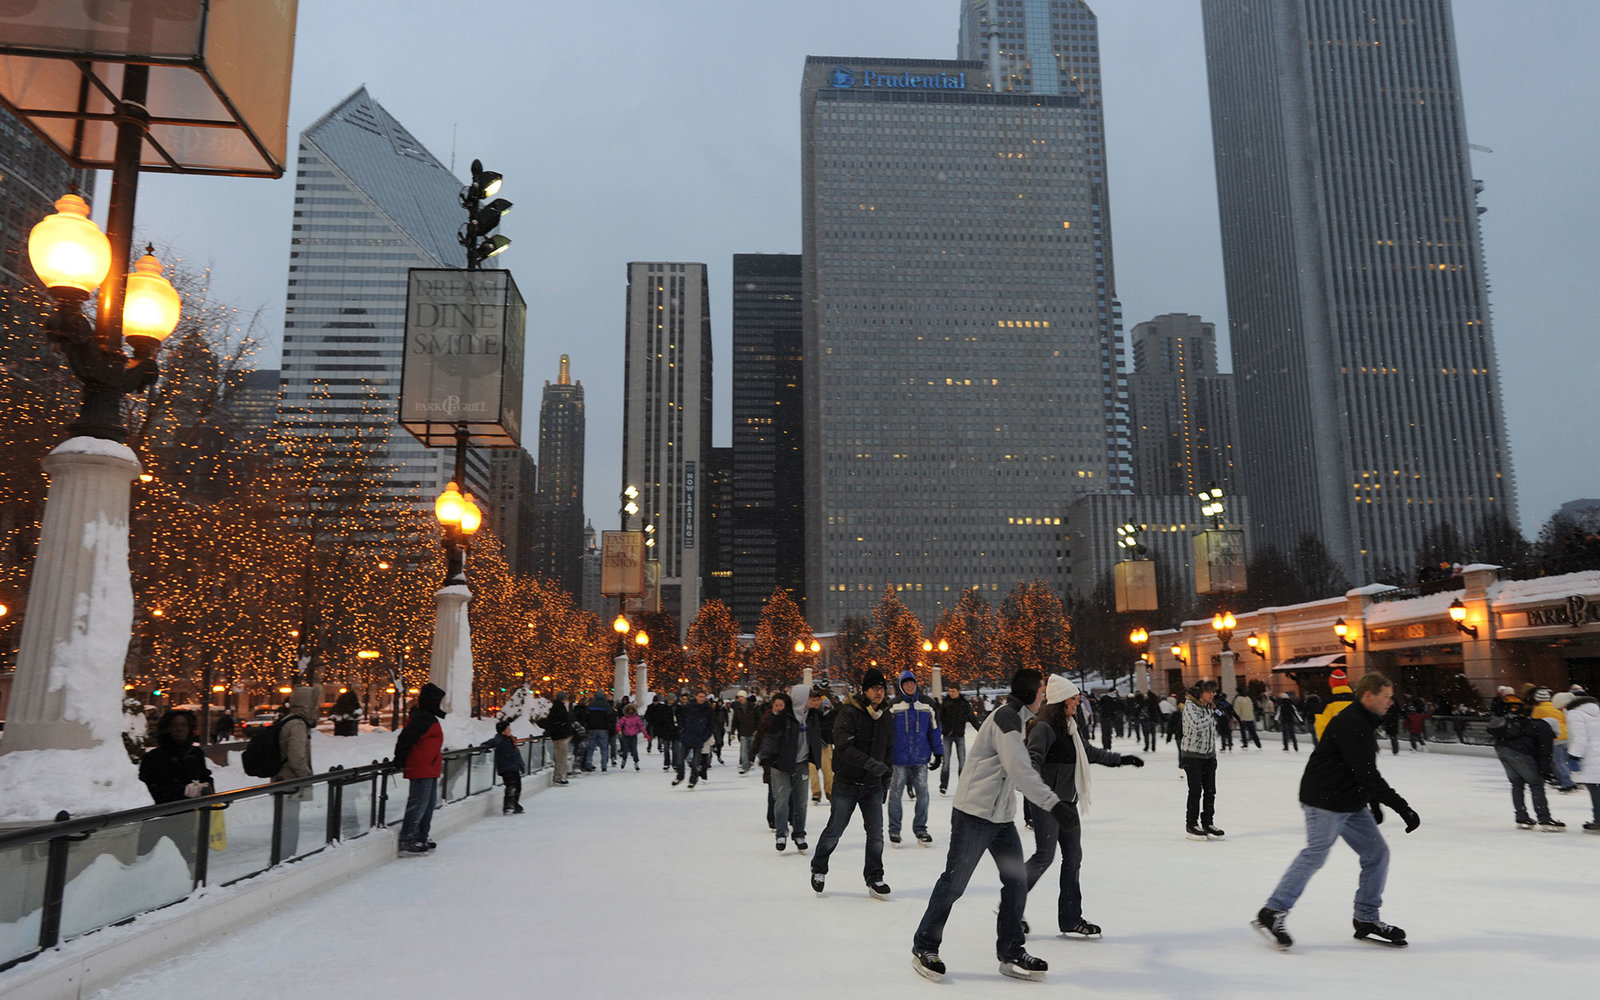 B8GB30 USA Chicago Illinois IL Winter Millennium Park public skating rink McCormick Tribune Plaza Ice Rink. Image shot 2009. Exact date unknown.